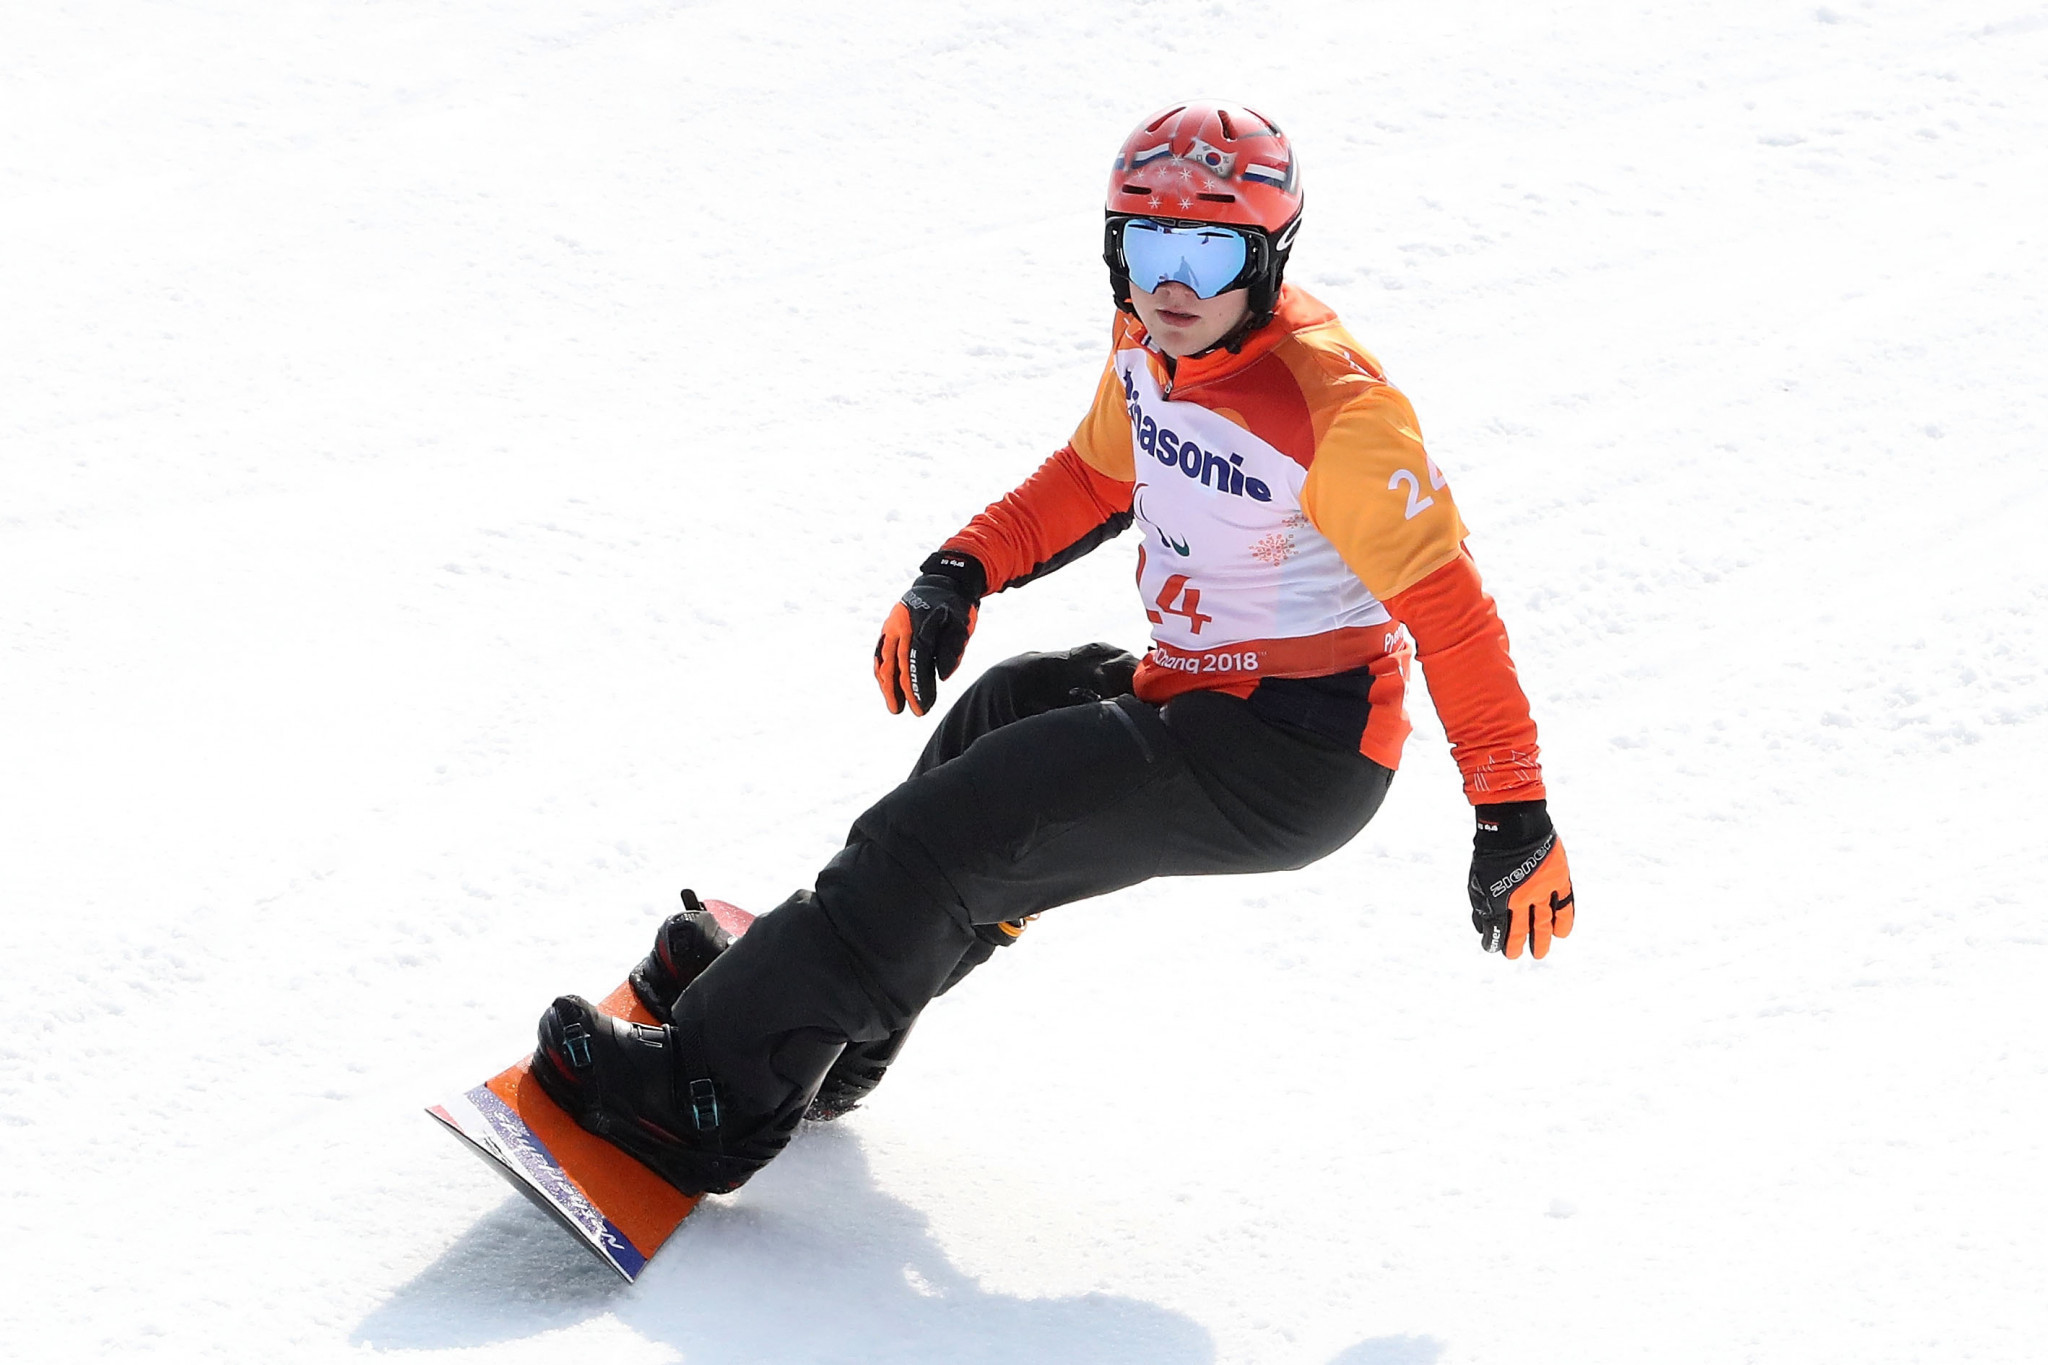 The Netherlands Chris Vos won a silver medal at Pyeongchang 2018 in snowboard cross bu triumphed at the World Para Snowboard World Cup before a home crowd in Landgraaf today ©Getty Images